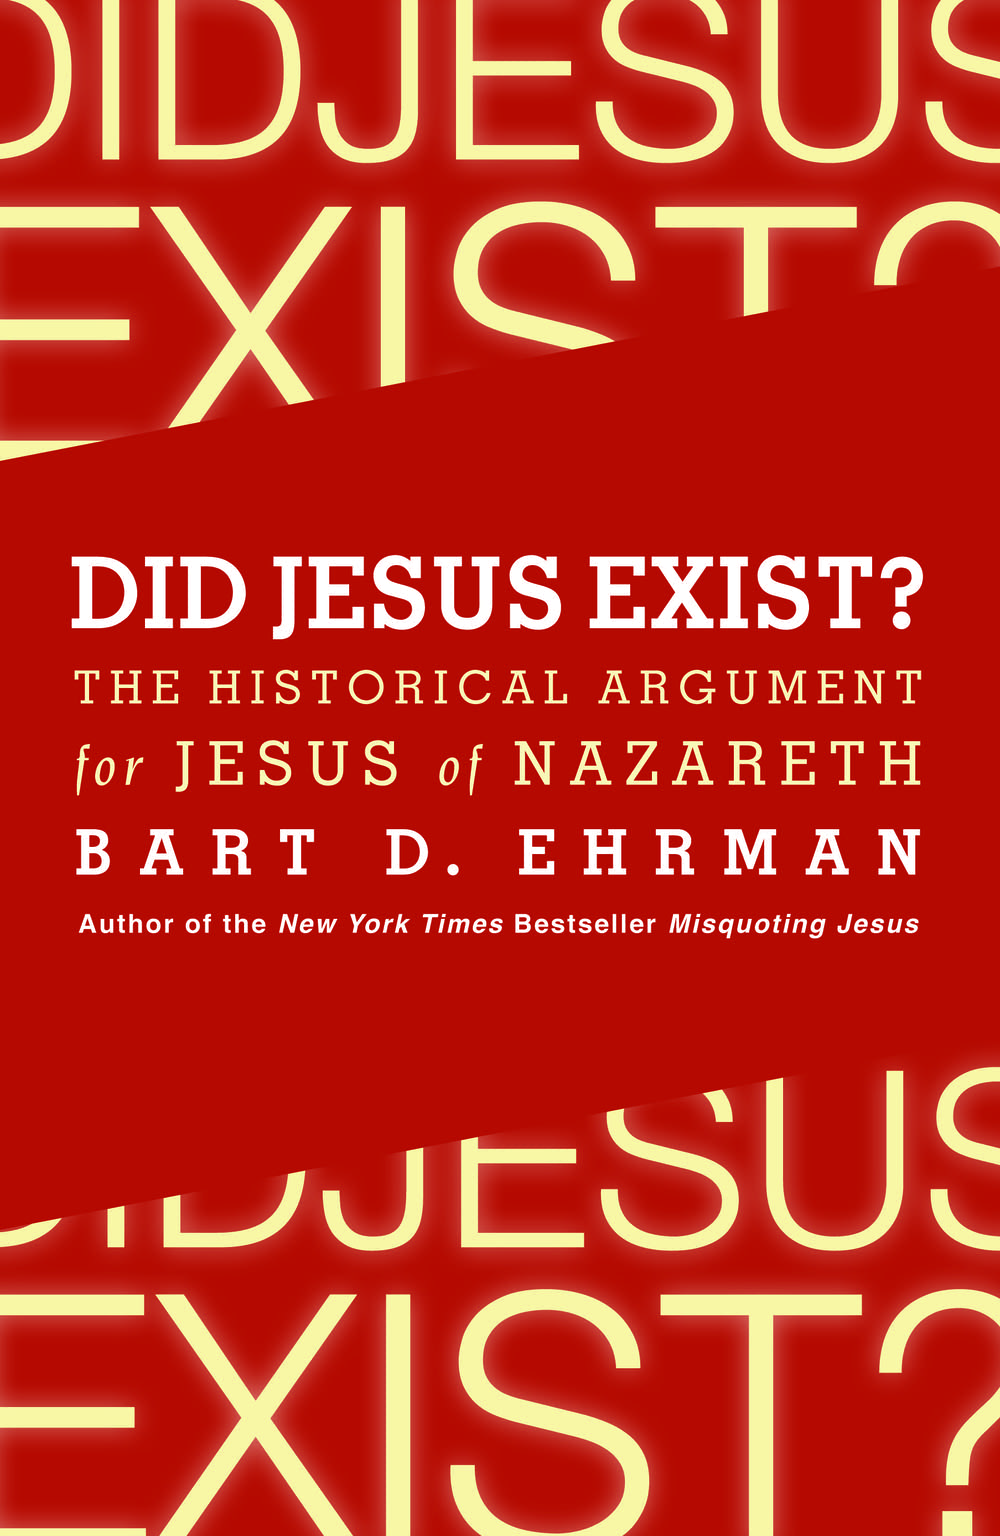 'Did Jesus Exist?' by Bart Ehrman